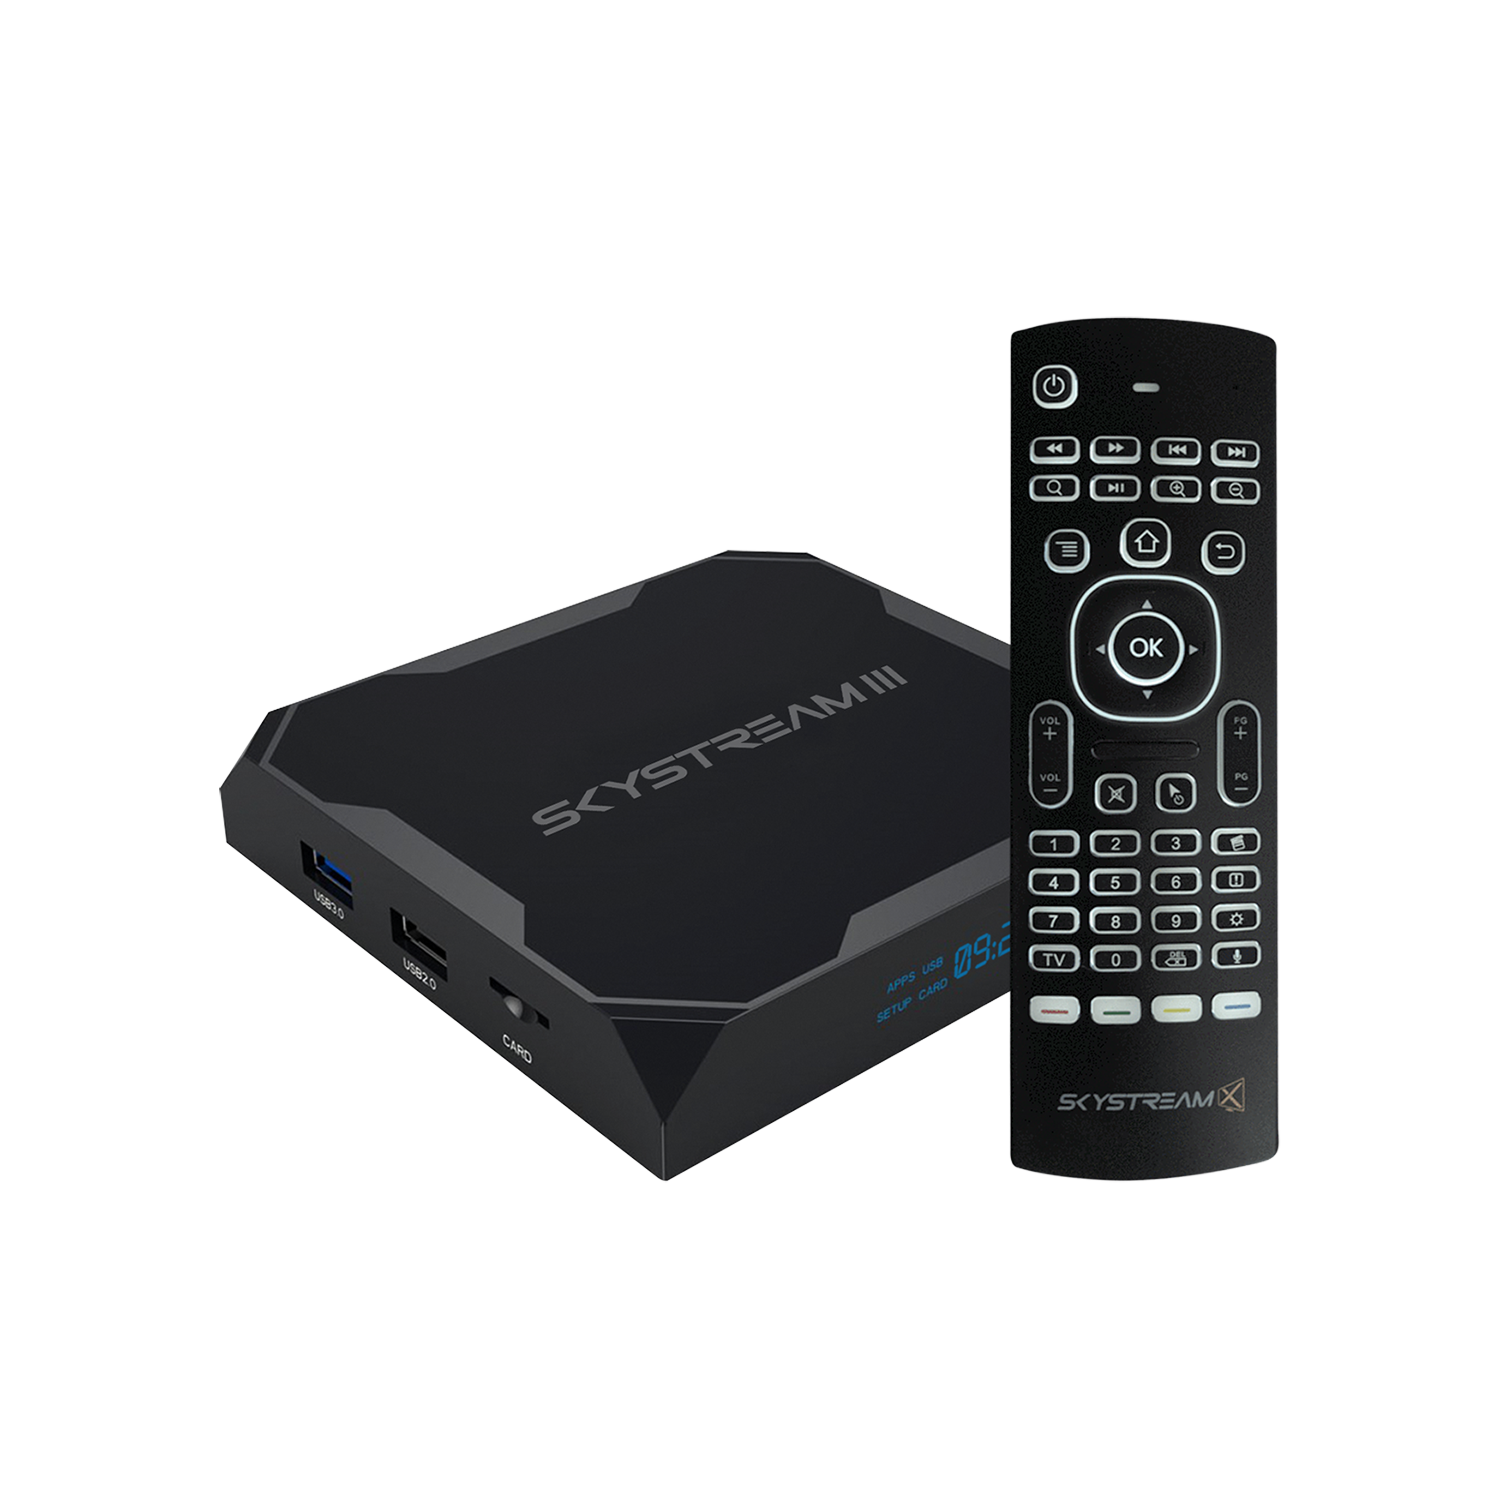 Stream Android To Tv >> Skystream Three Android Tv Box With Air Mouse Remote Skystream